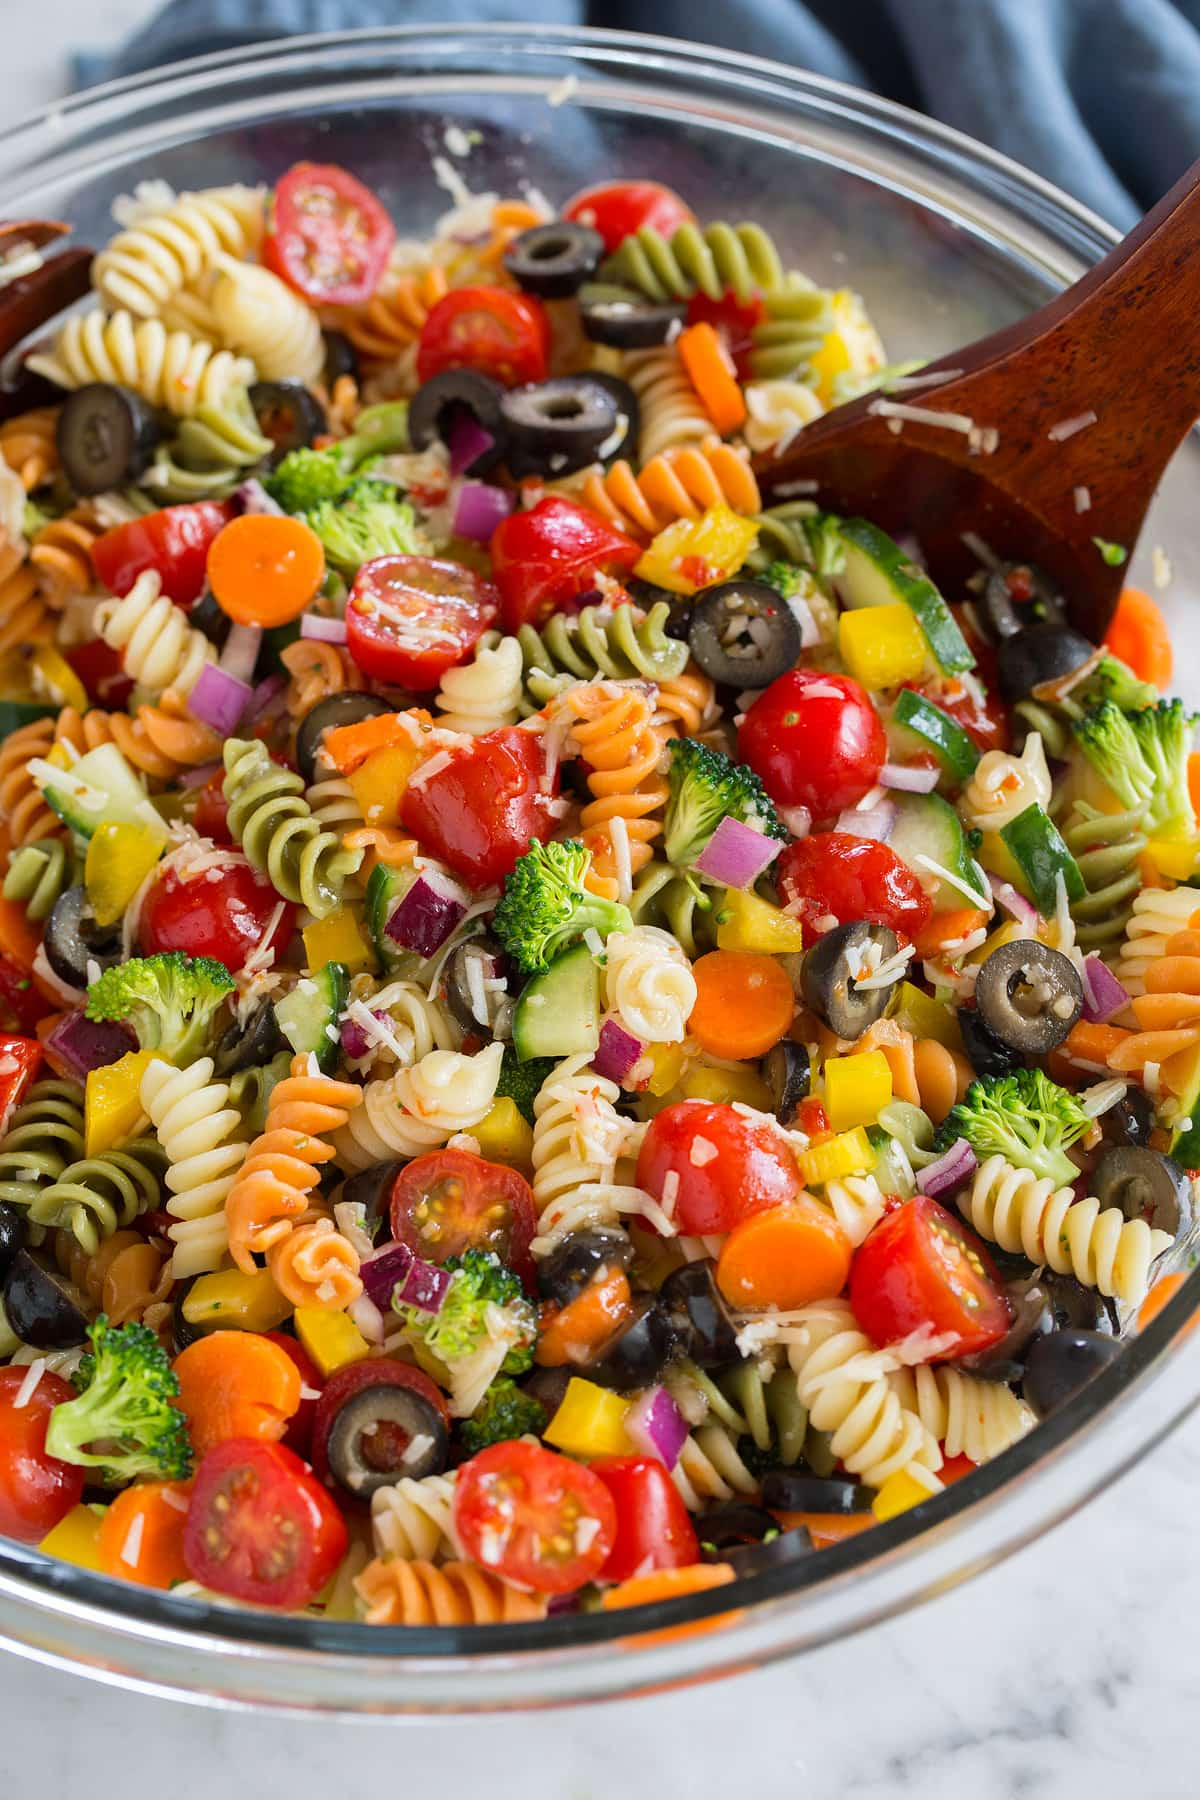 Easy Pasta Salad Recipe (The Best!) - Cooking Classy